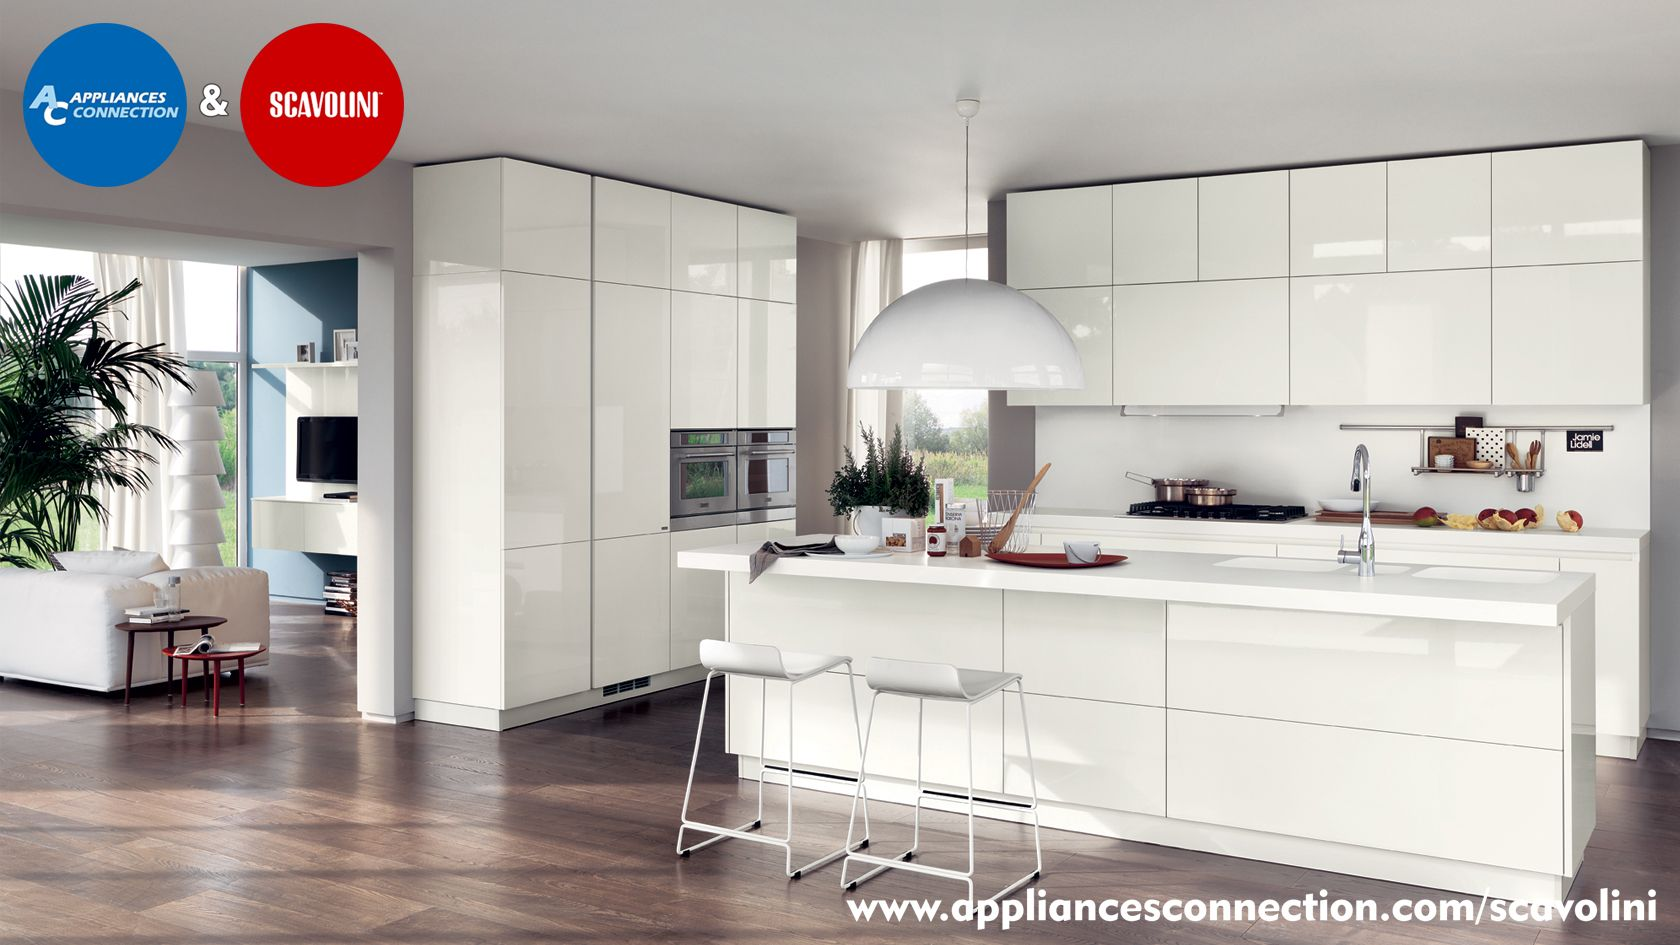 Italian Made and Designed, Scavolini Cabinets come in all styles ...